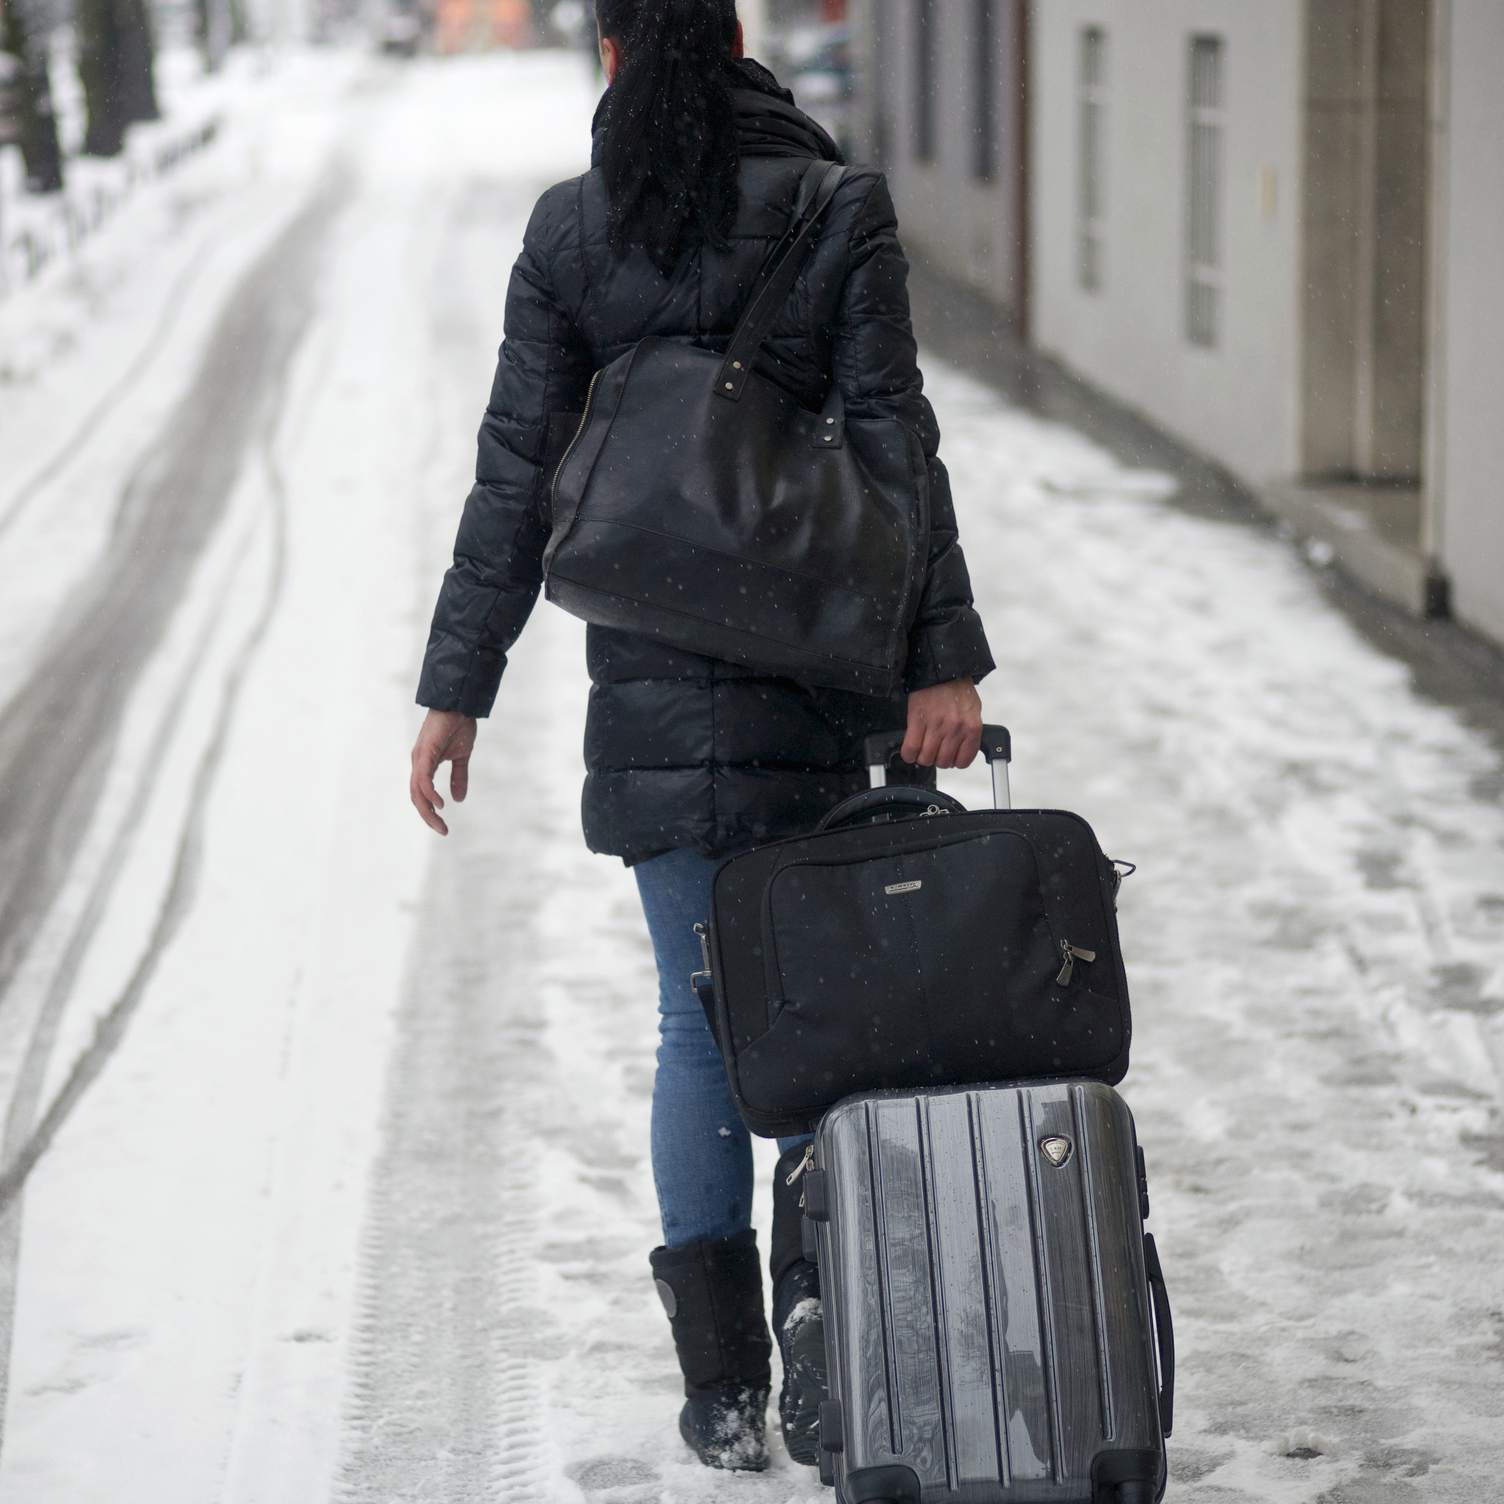 Suitcase in the snow